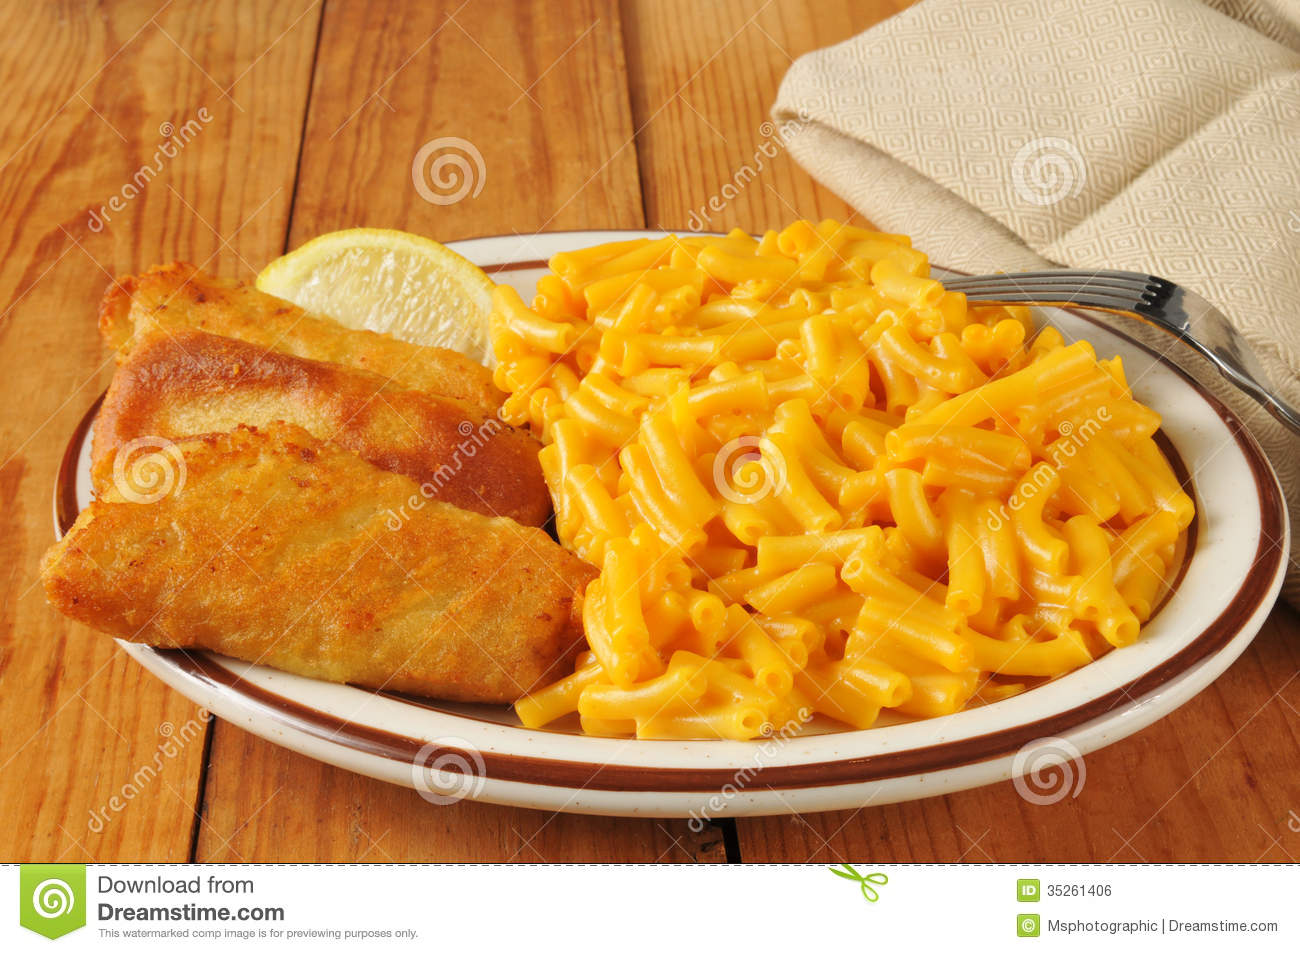 Fish stick with macaroni and cheese royalty free stock for Fish and cheese